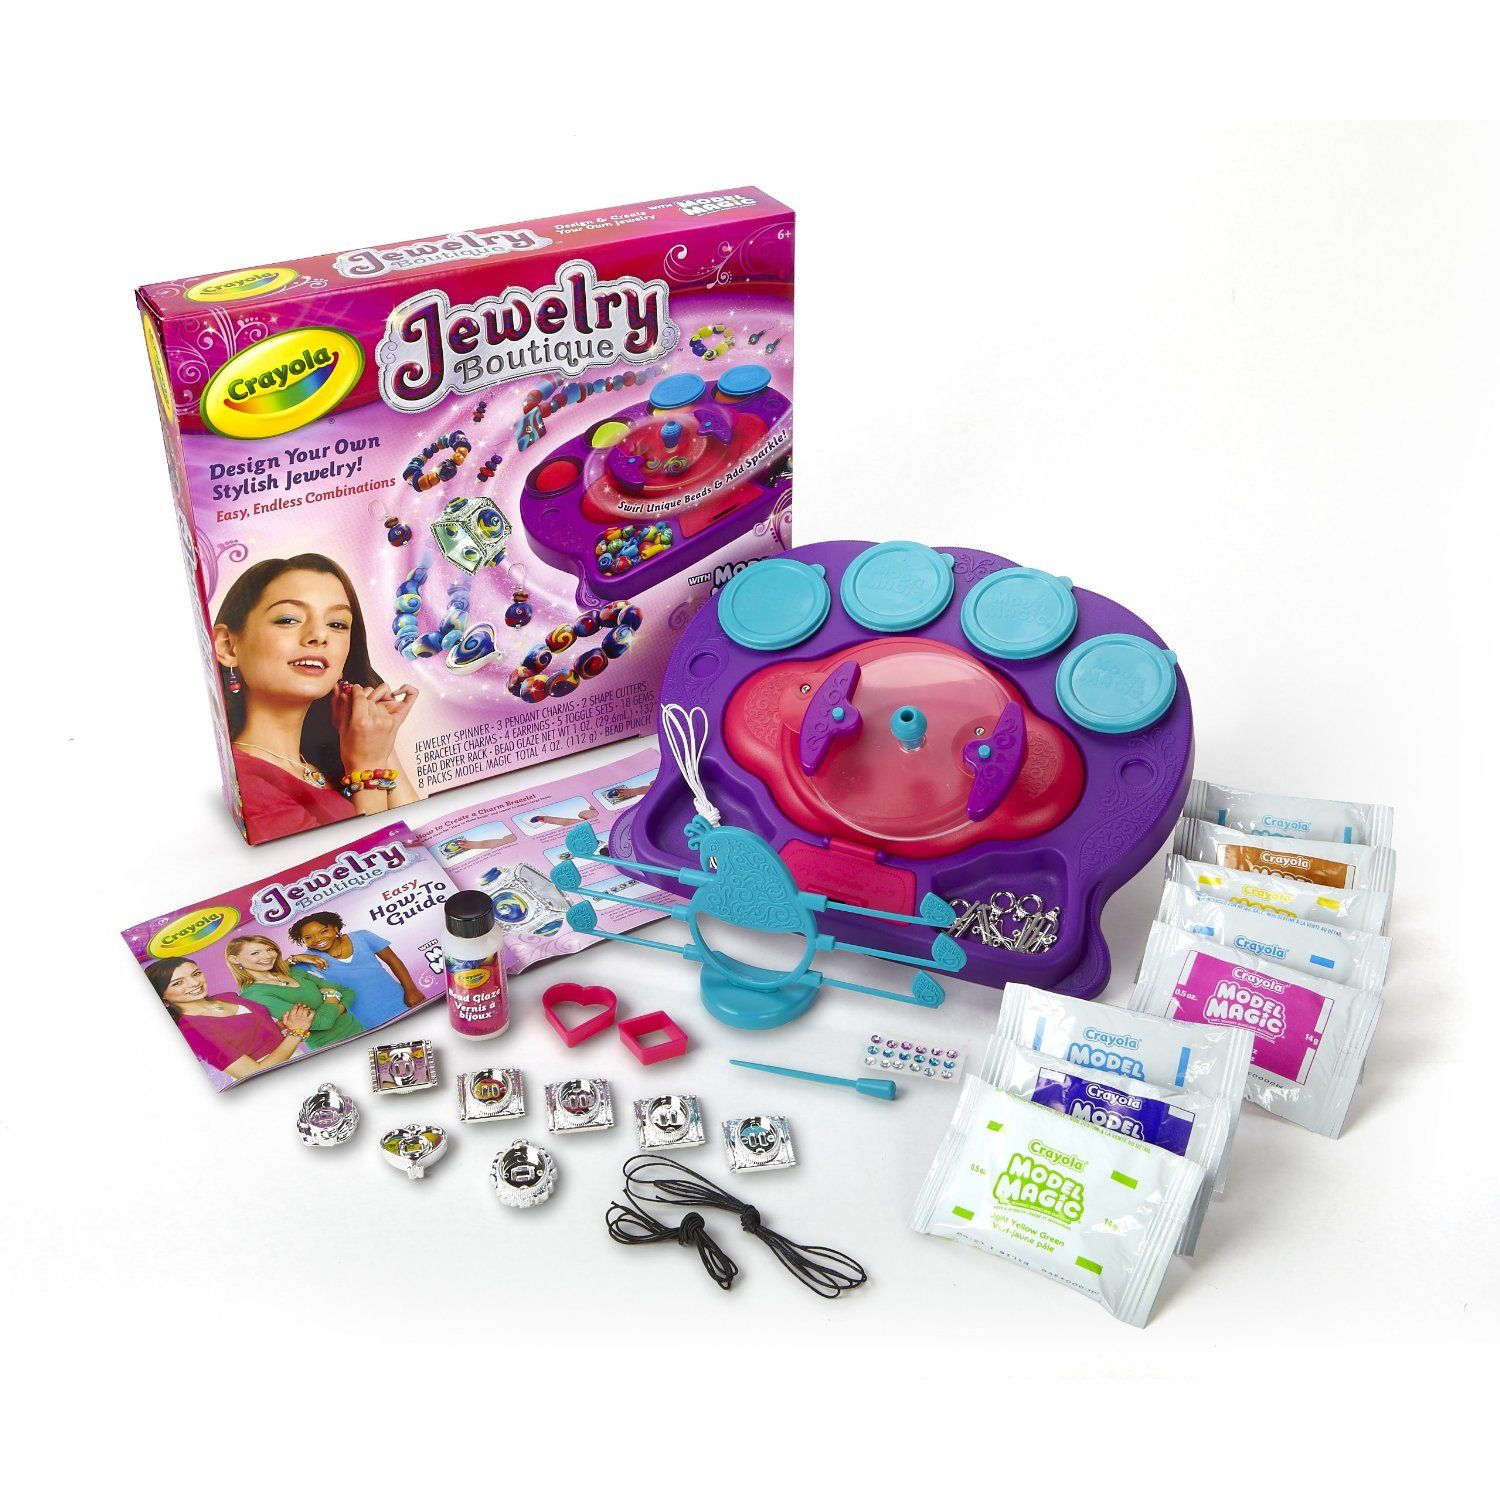 Cool Toys For Christmas : Crayola model magic jewelry studio to gift a nine year old